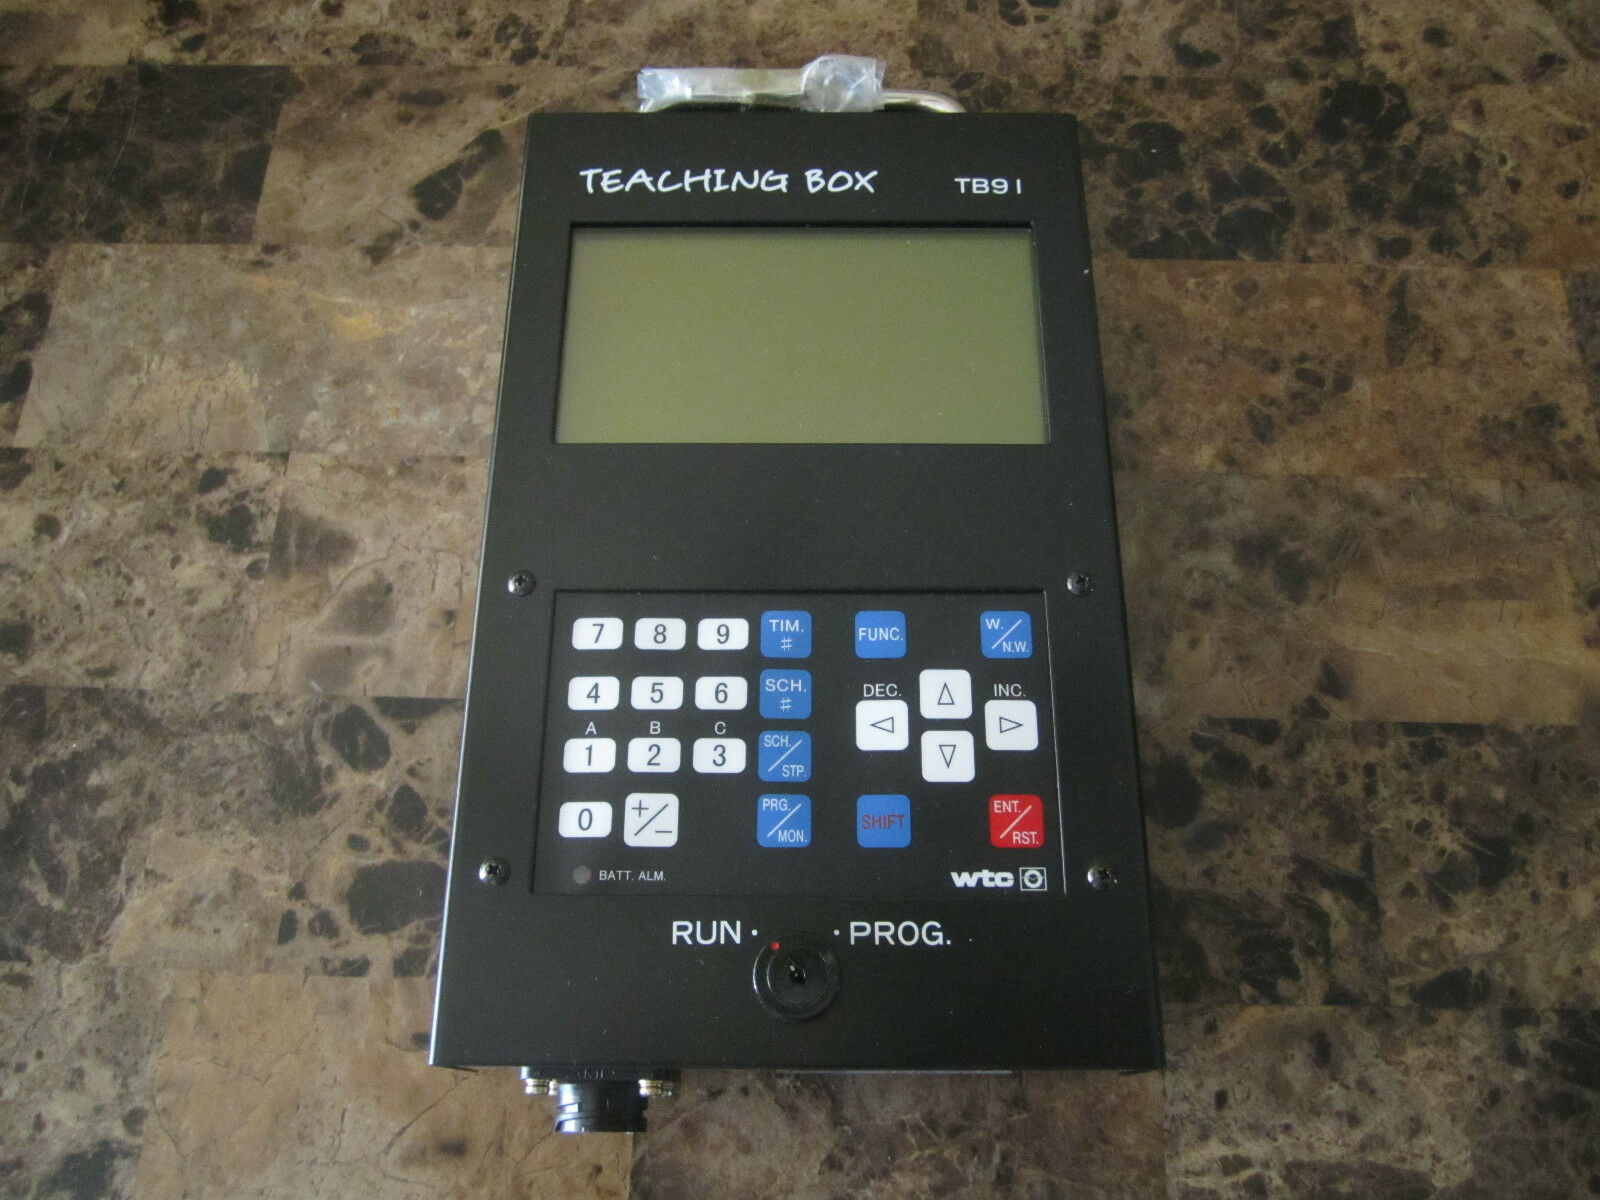 NEW WELTRONIC TEACHING BOX TB91 P01A PROGRAM NO S291 V1.0